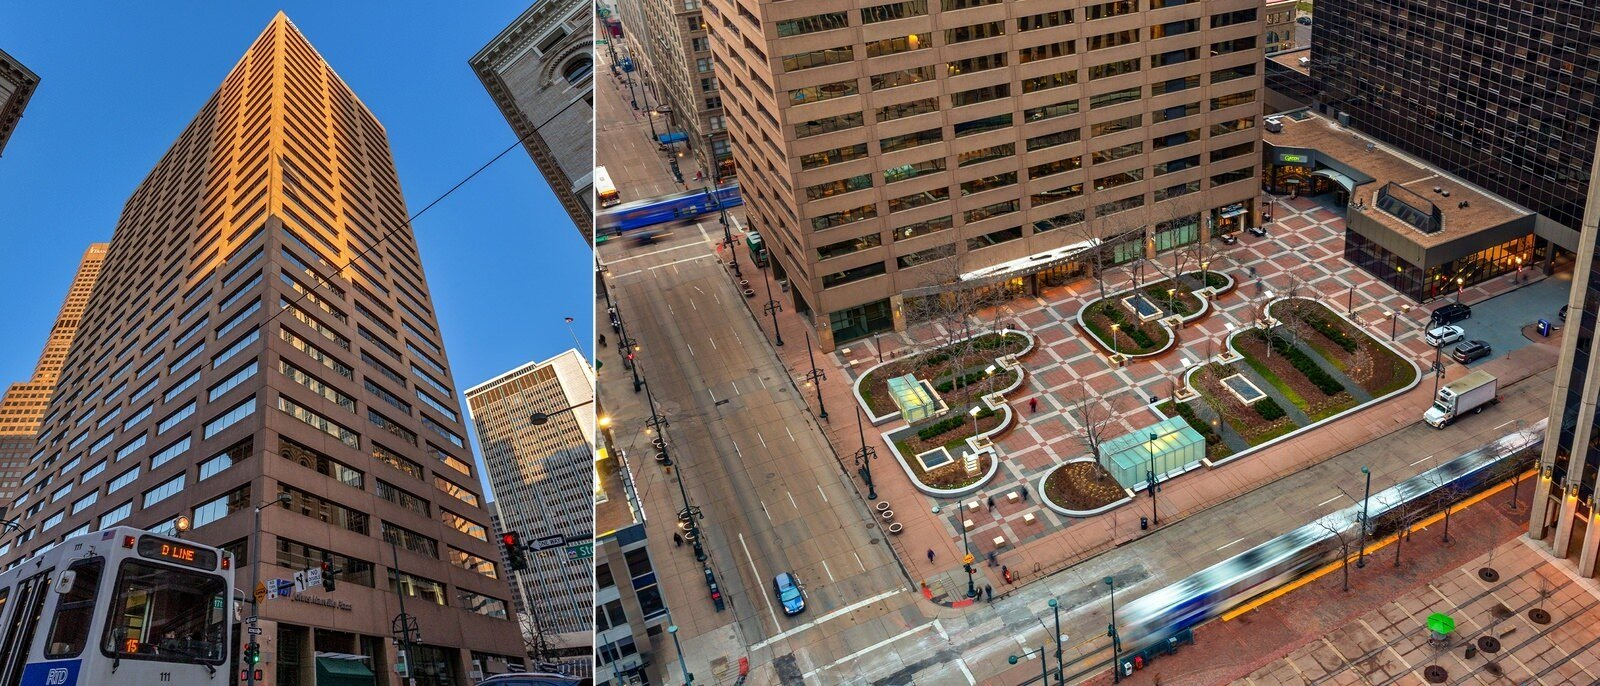 A large outdoor plaza is seen in the middle of a downtown area with large skyscrapers surrounding it.